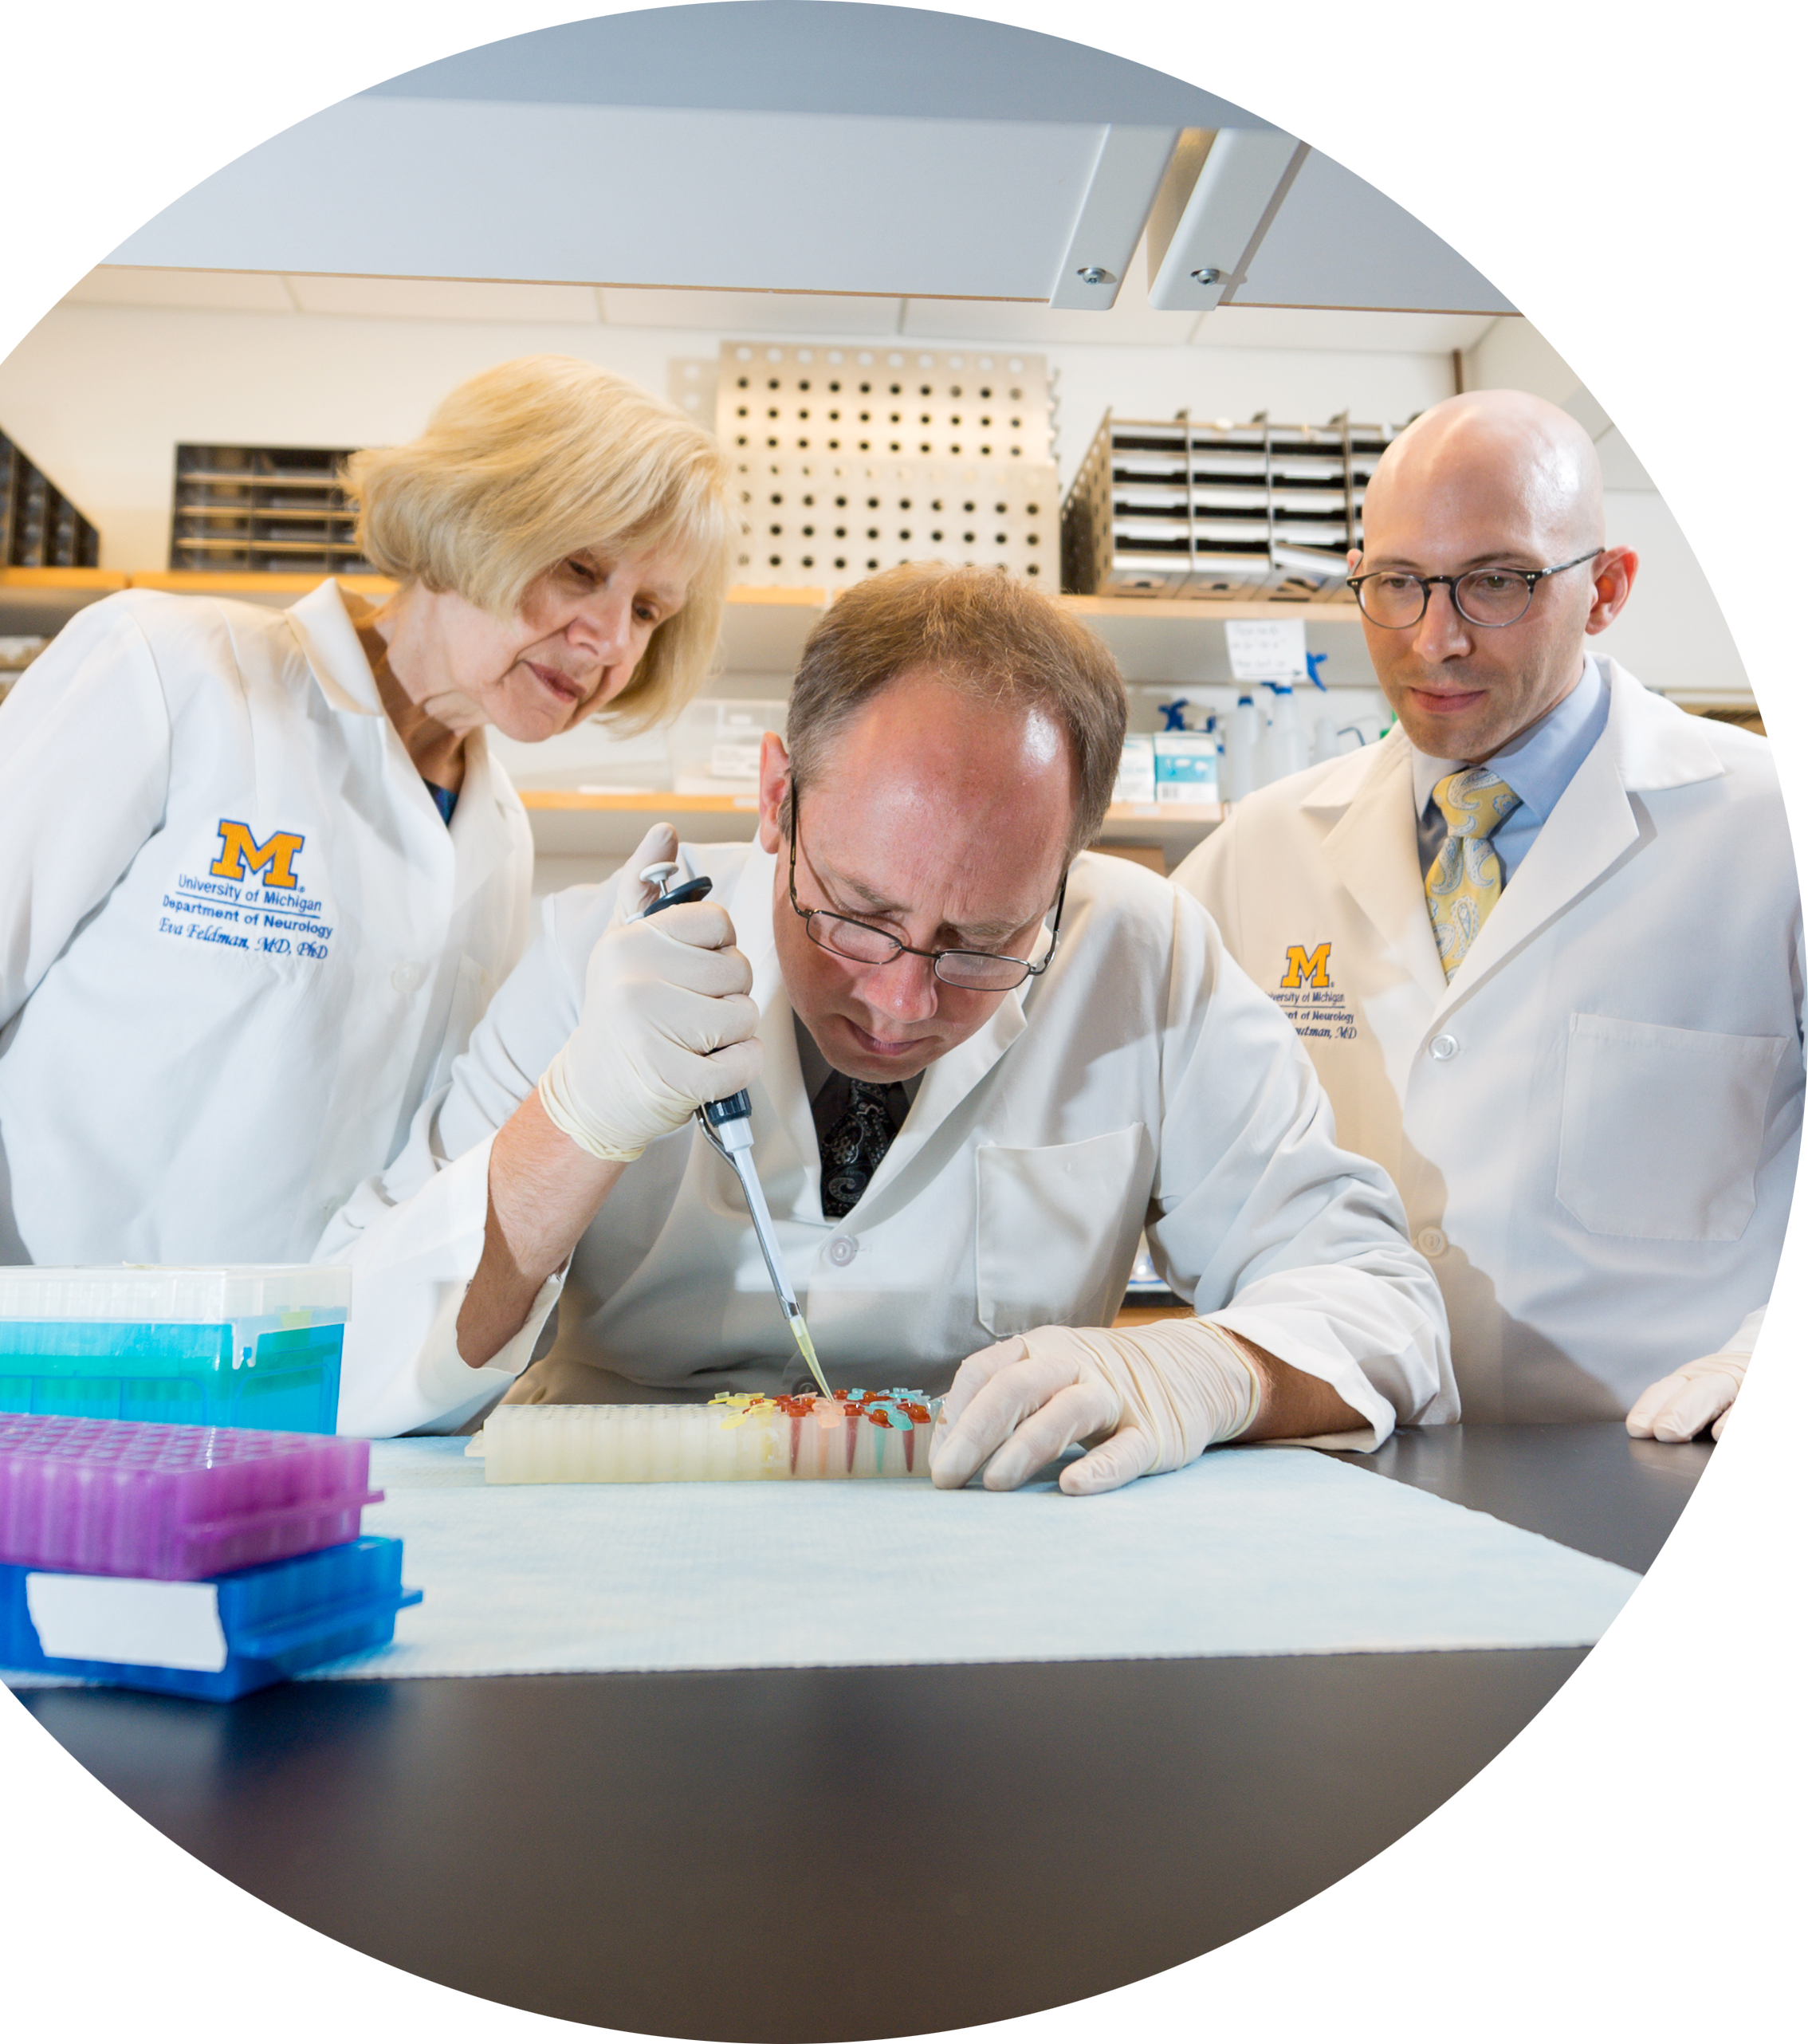 photo of Dr. Eva Feldman, Dr. Benjamin Murdock and Dr. Stephen Goutman working in the lab